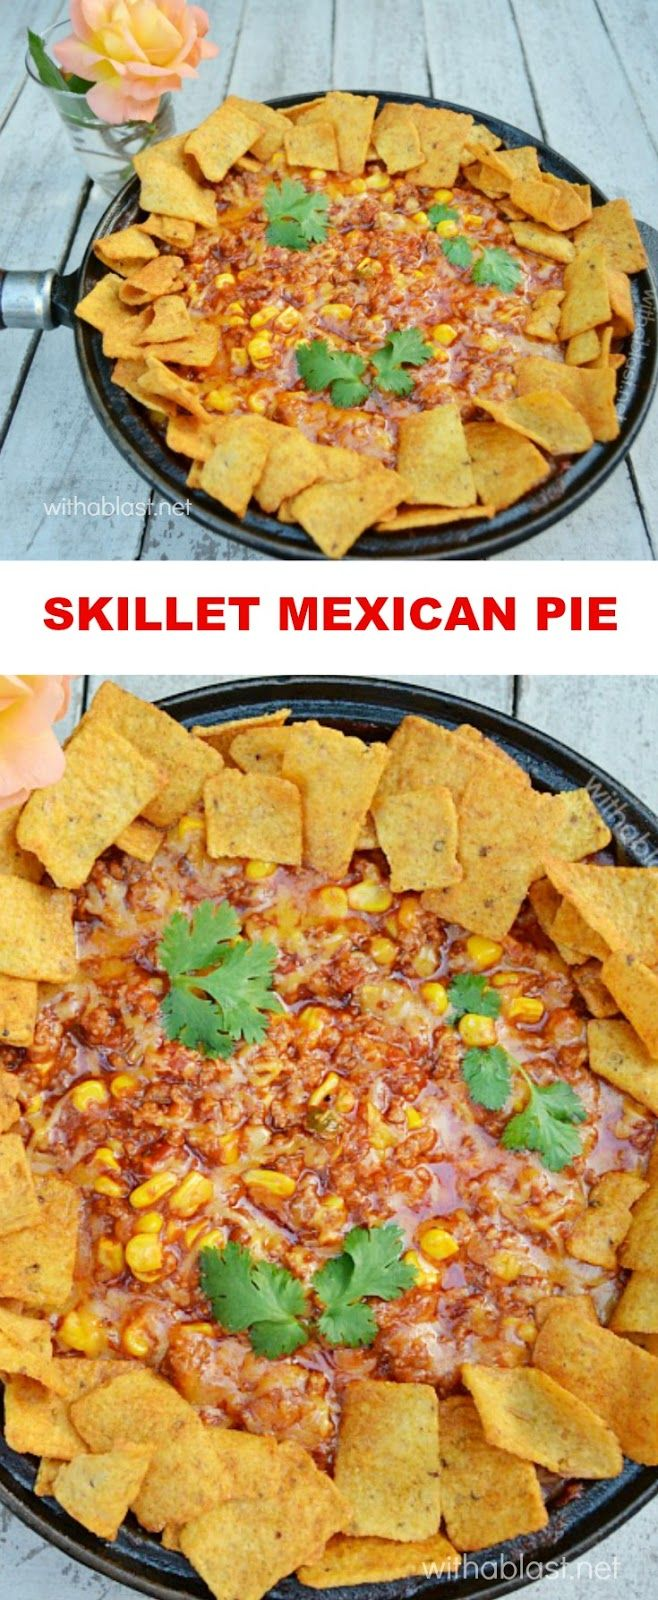 I always make this, delicious, spicy Skillet Mexican Pie when pressed for time - on the table in less than 30 minutes !